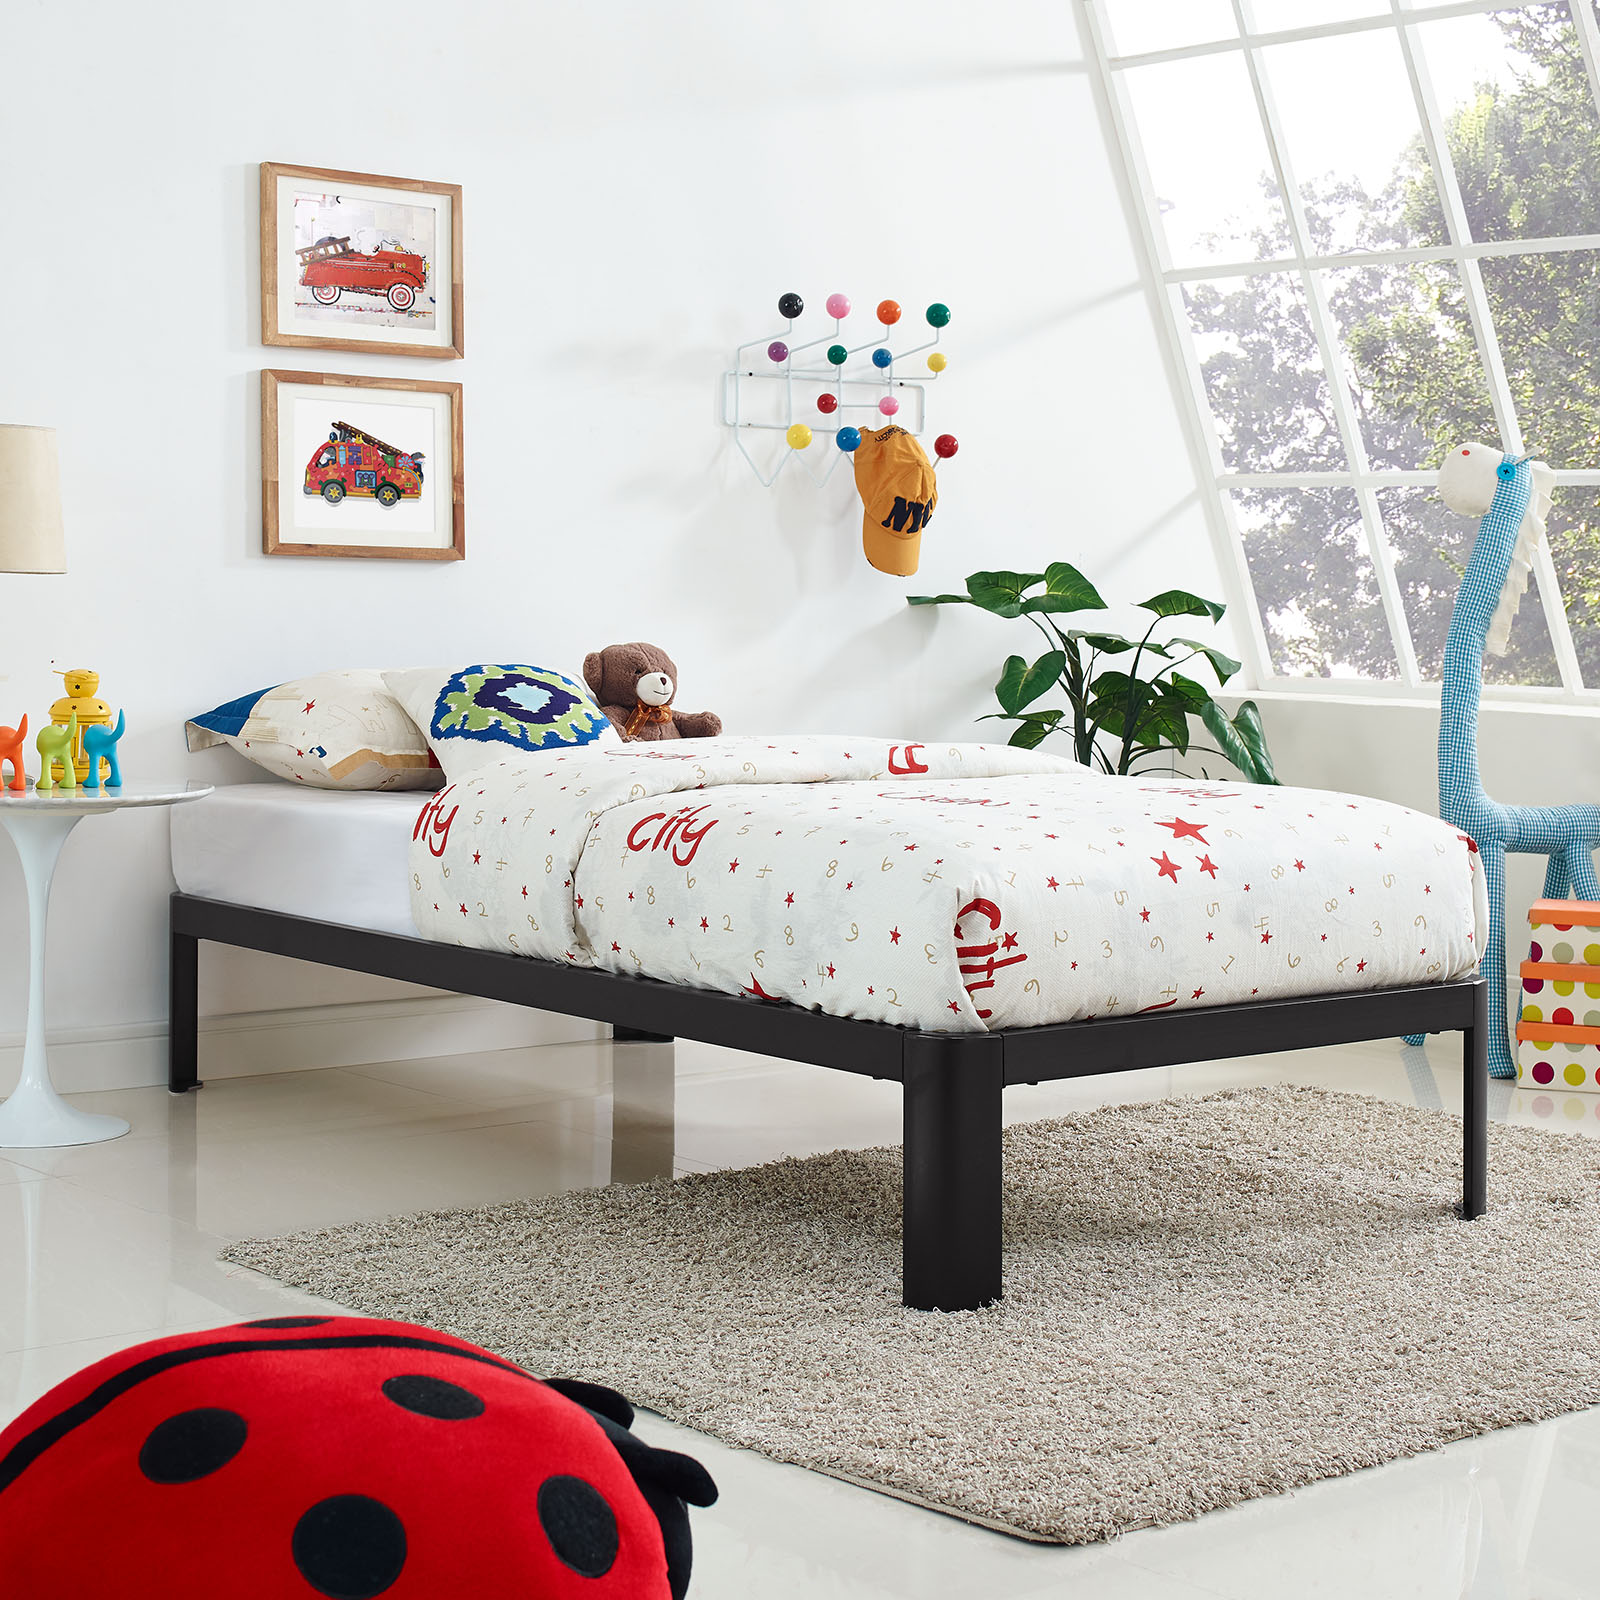 Modway Corinne Kids Twin Stainless Steel Bed Frame, Multiple Colors